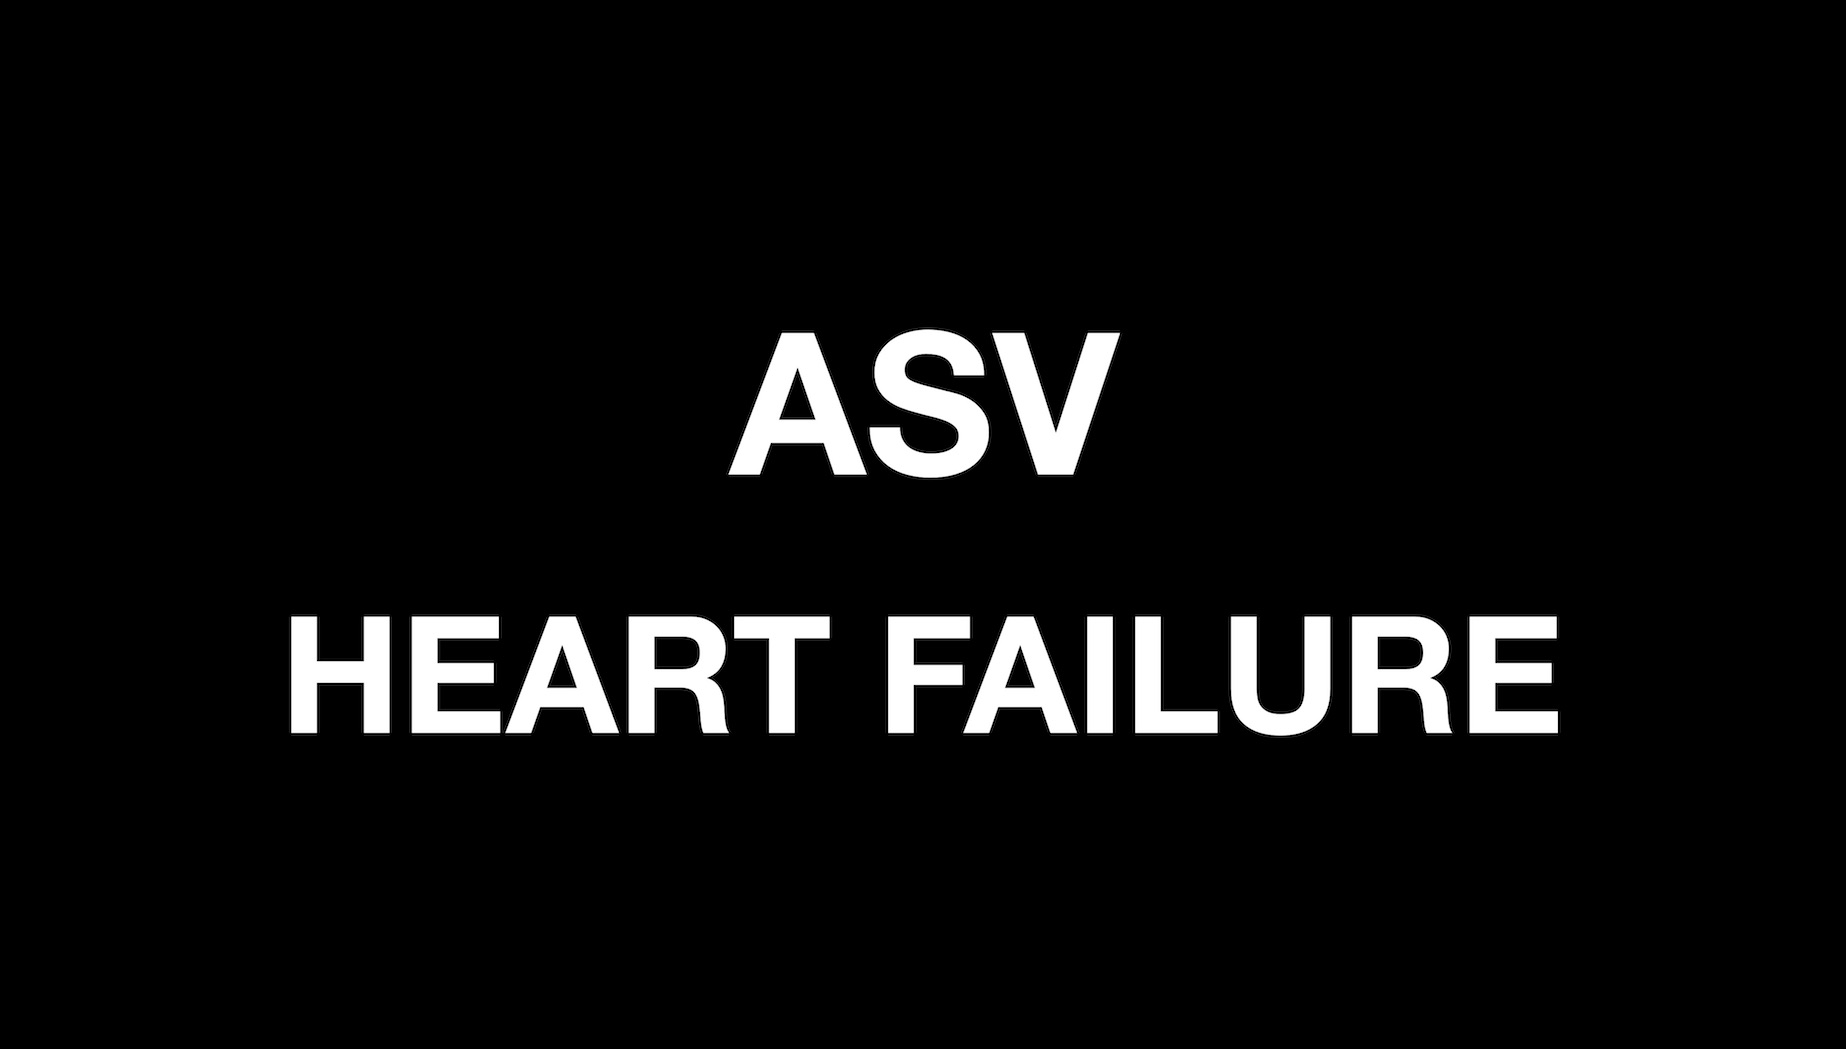 ASV recall Heart failure